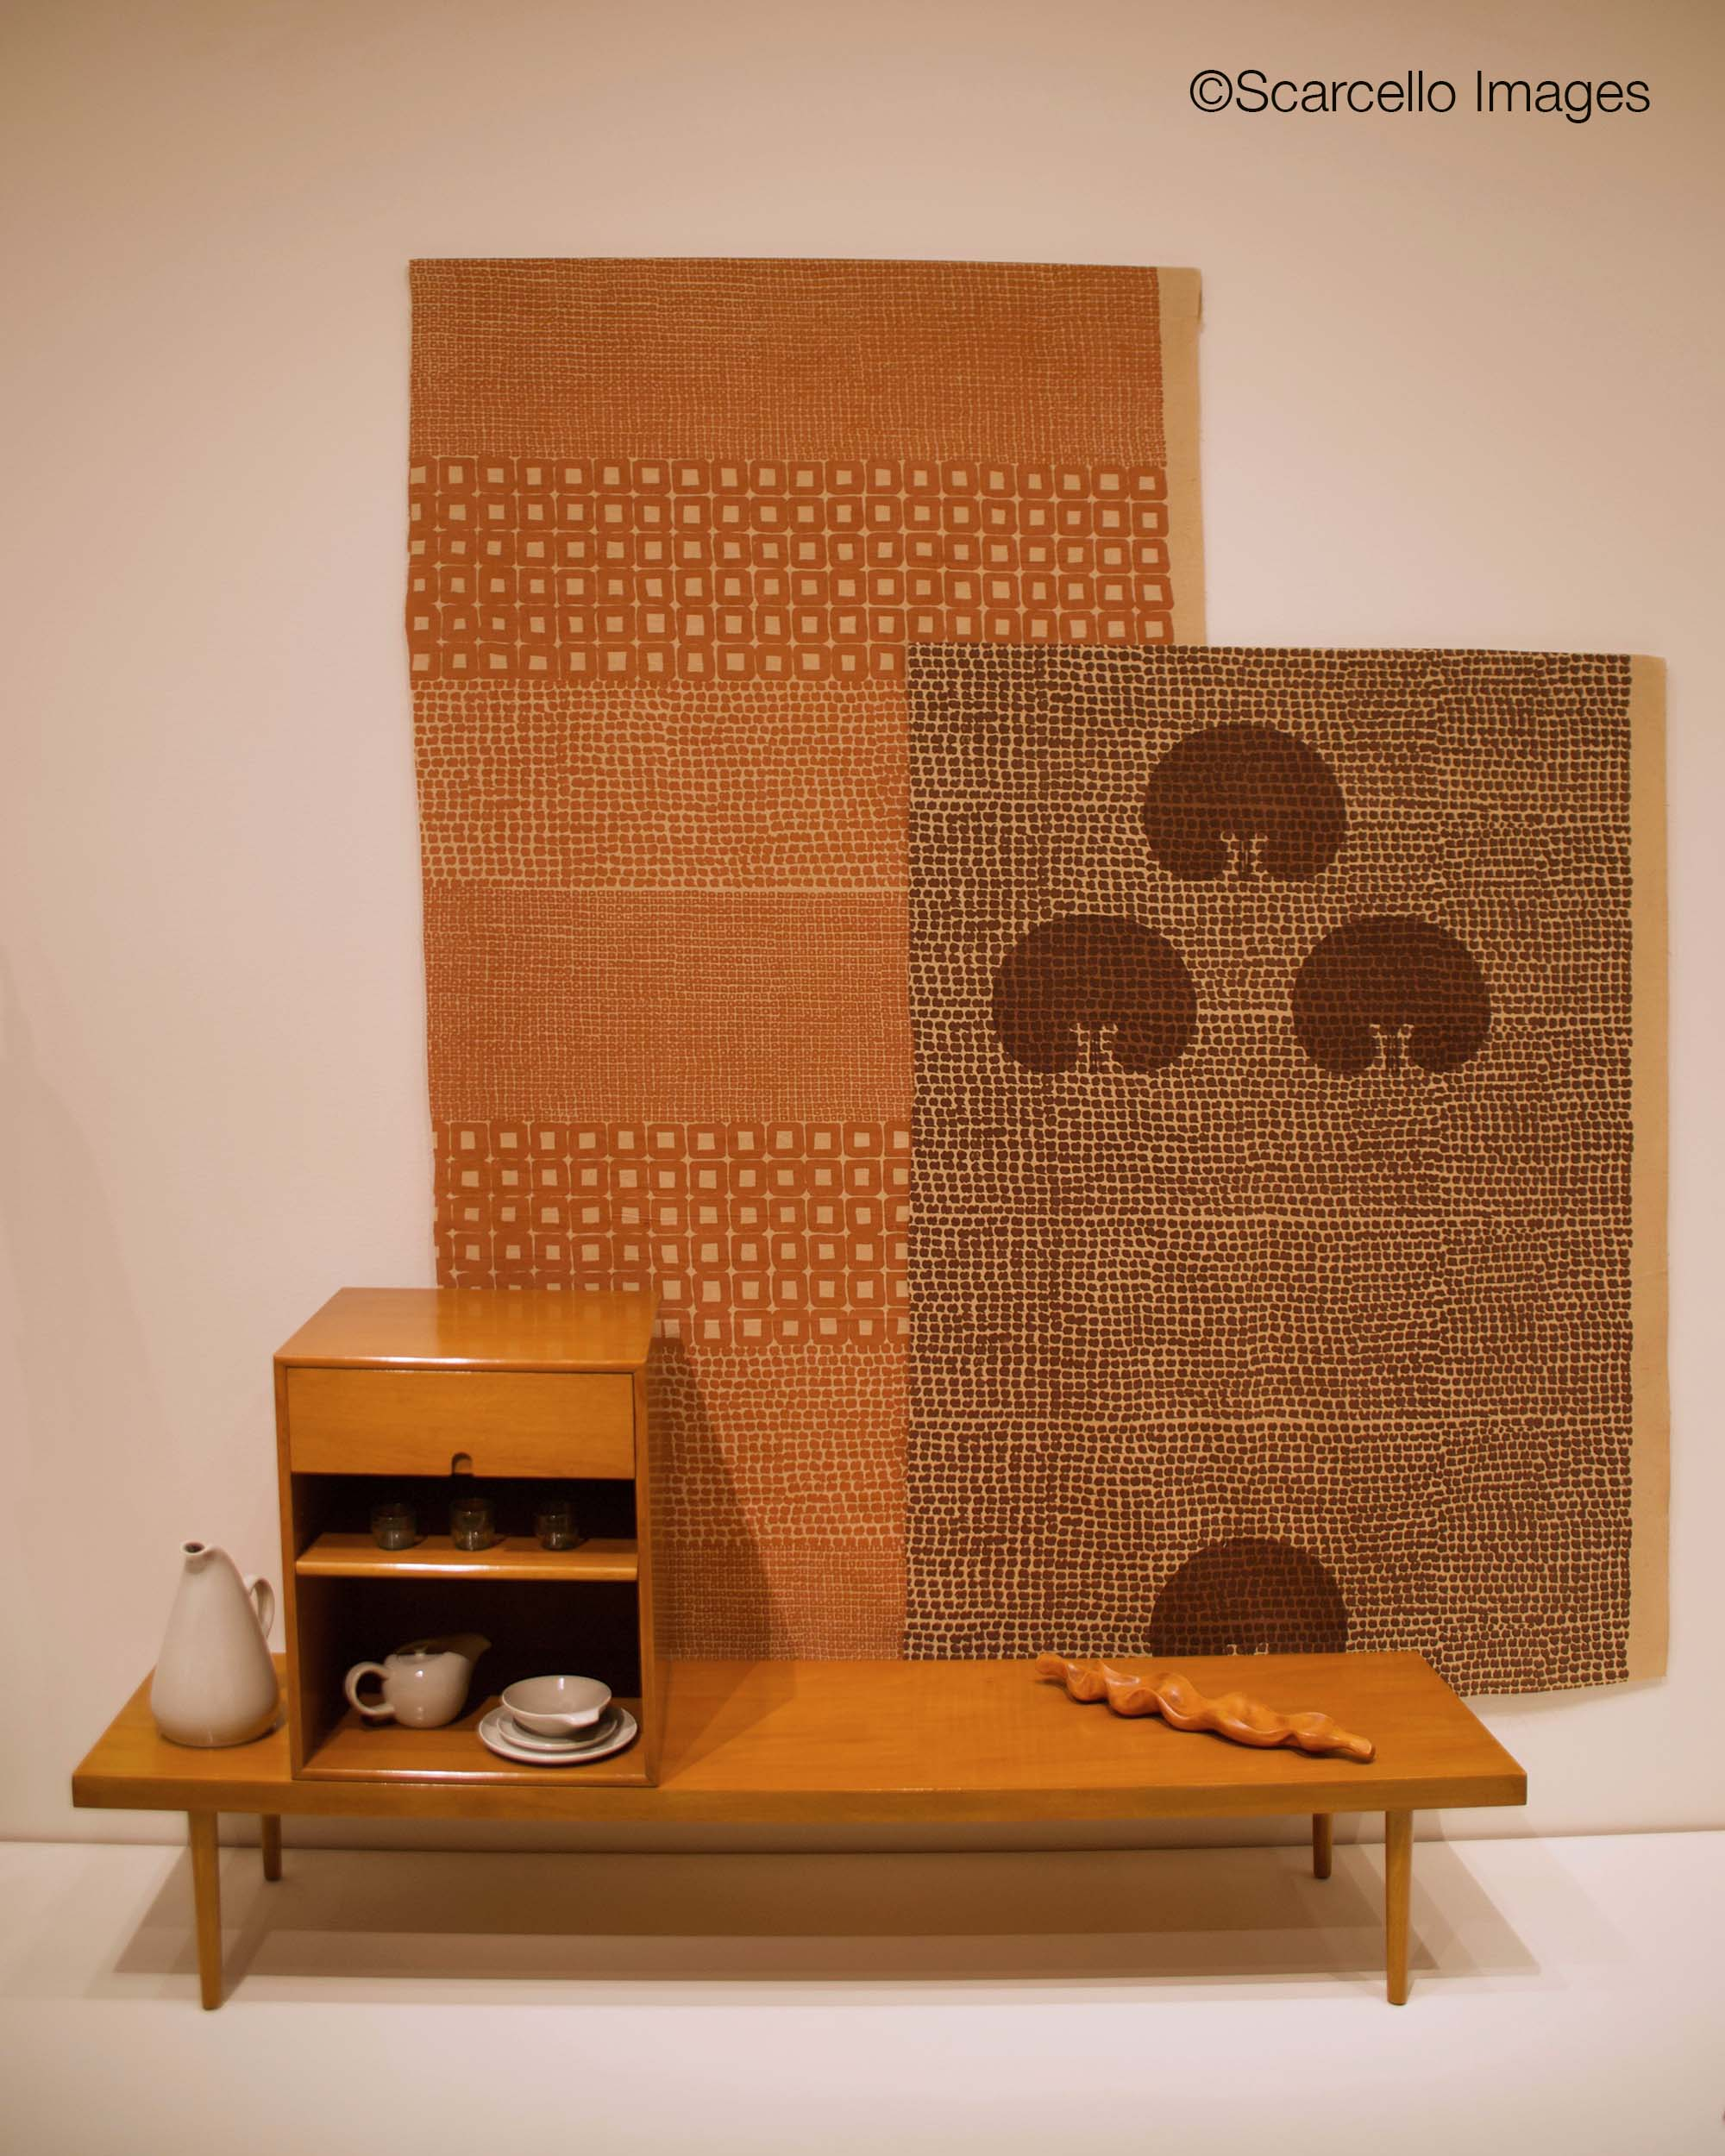 Bench and cabinet by Charles Eames and Eero Saarinen. Fabrics by Noémi Raymond. All 1940.